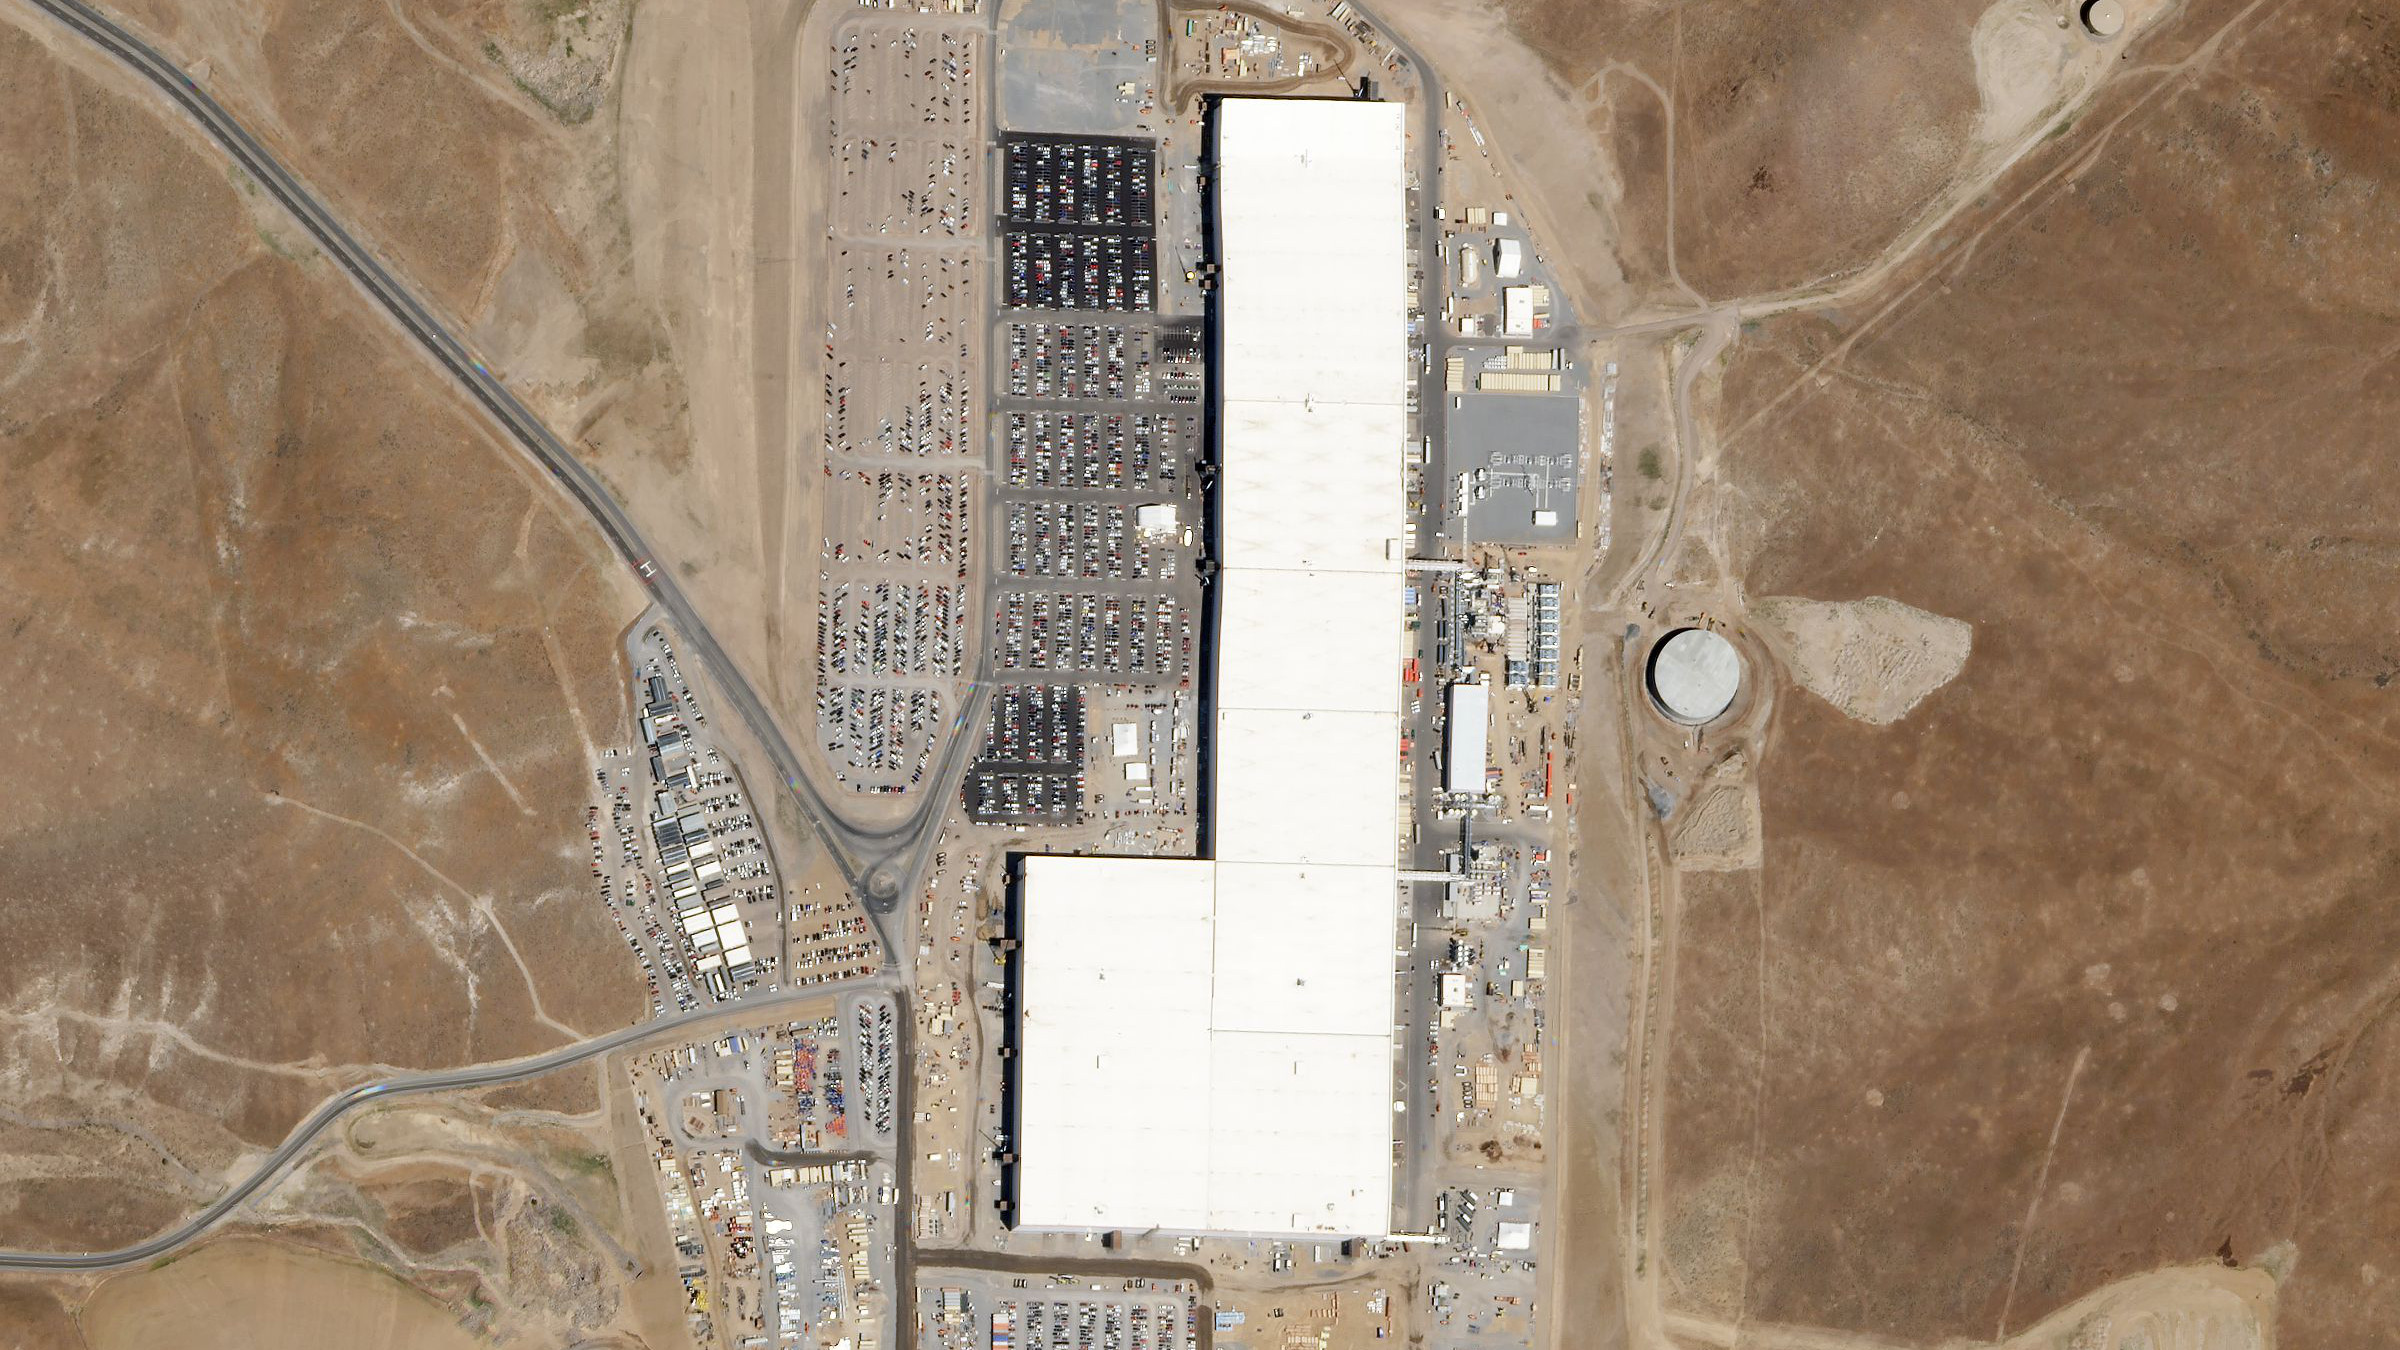 Tesla investors could track daily activity at Elon Musk's Nevada Gigafactory.